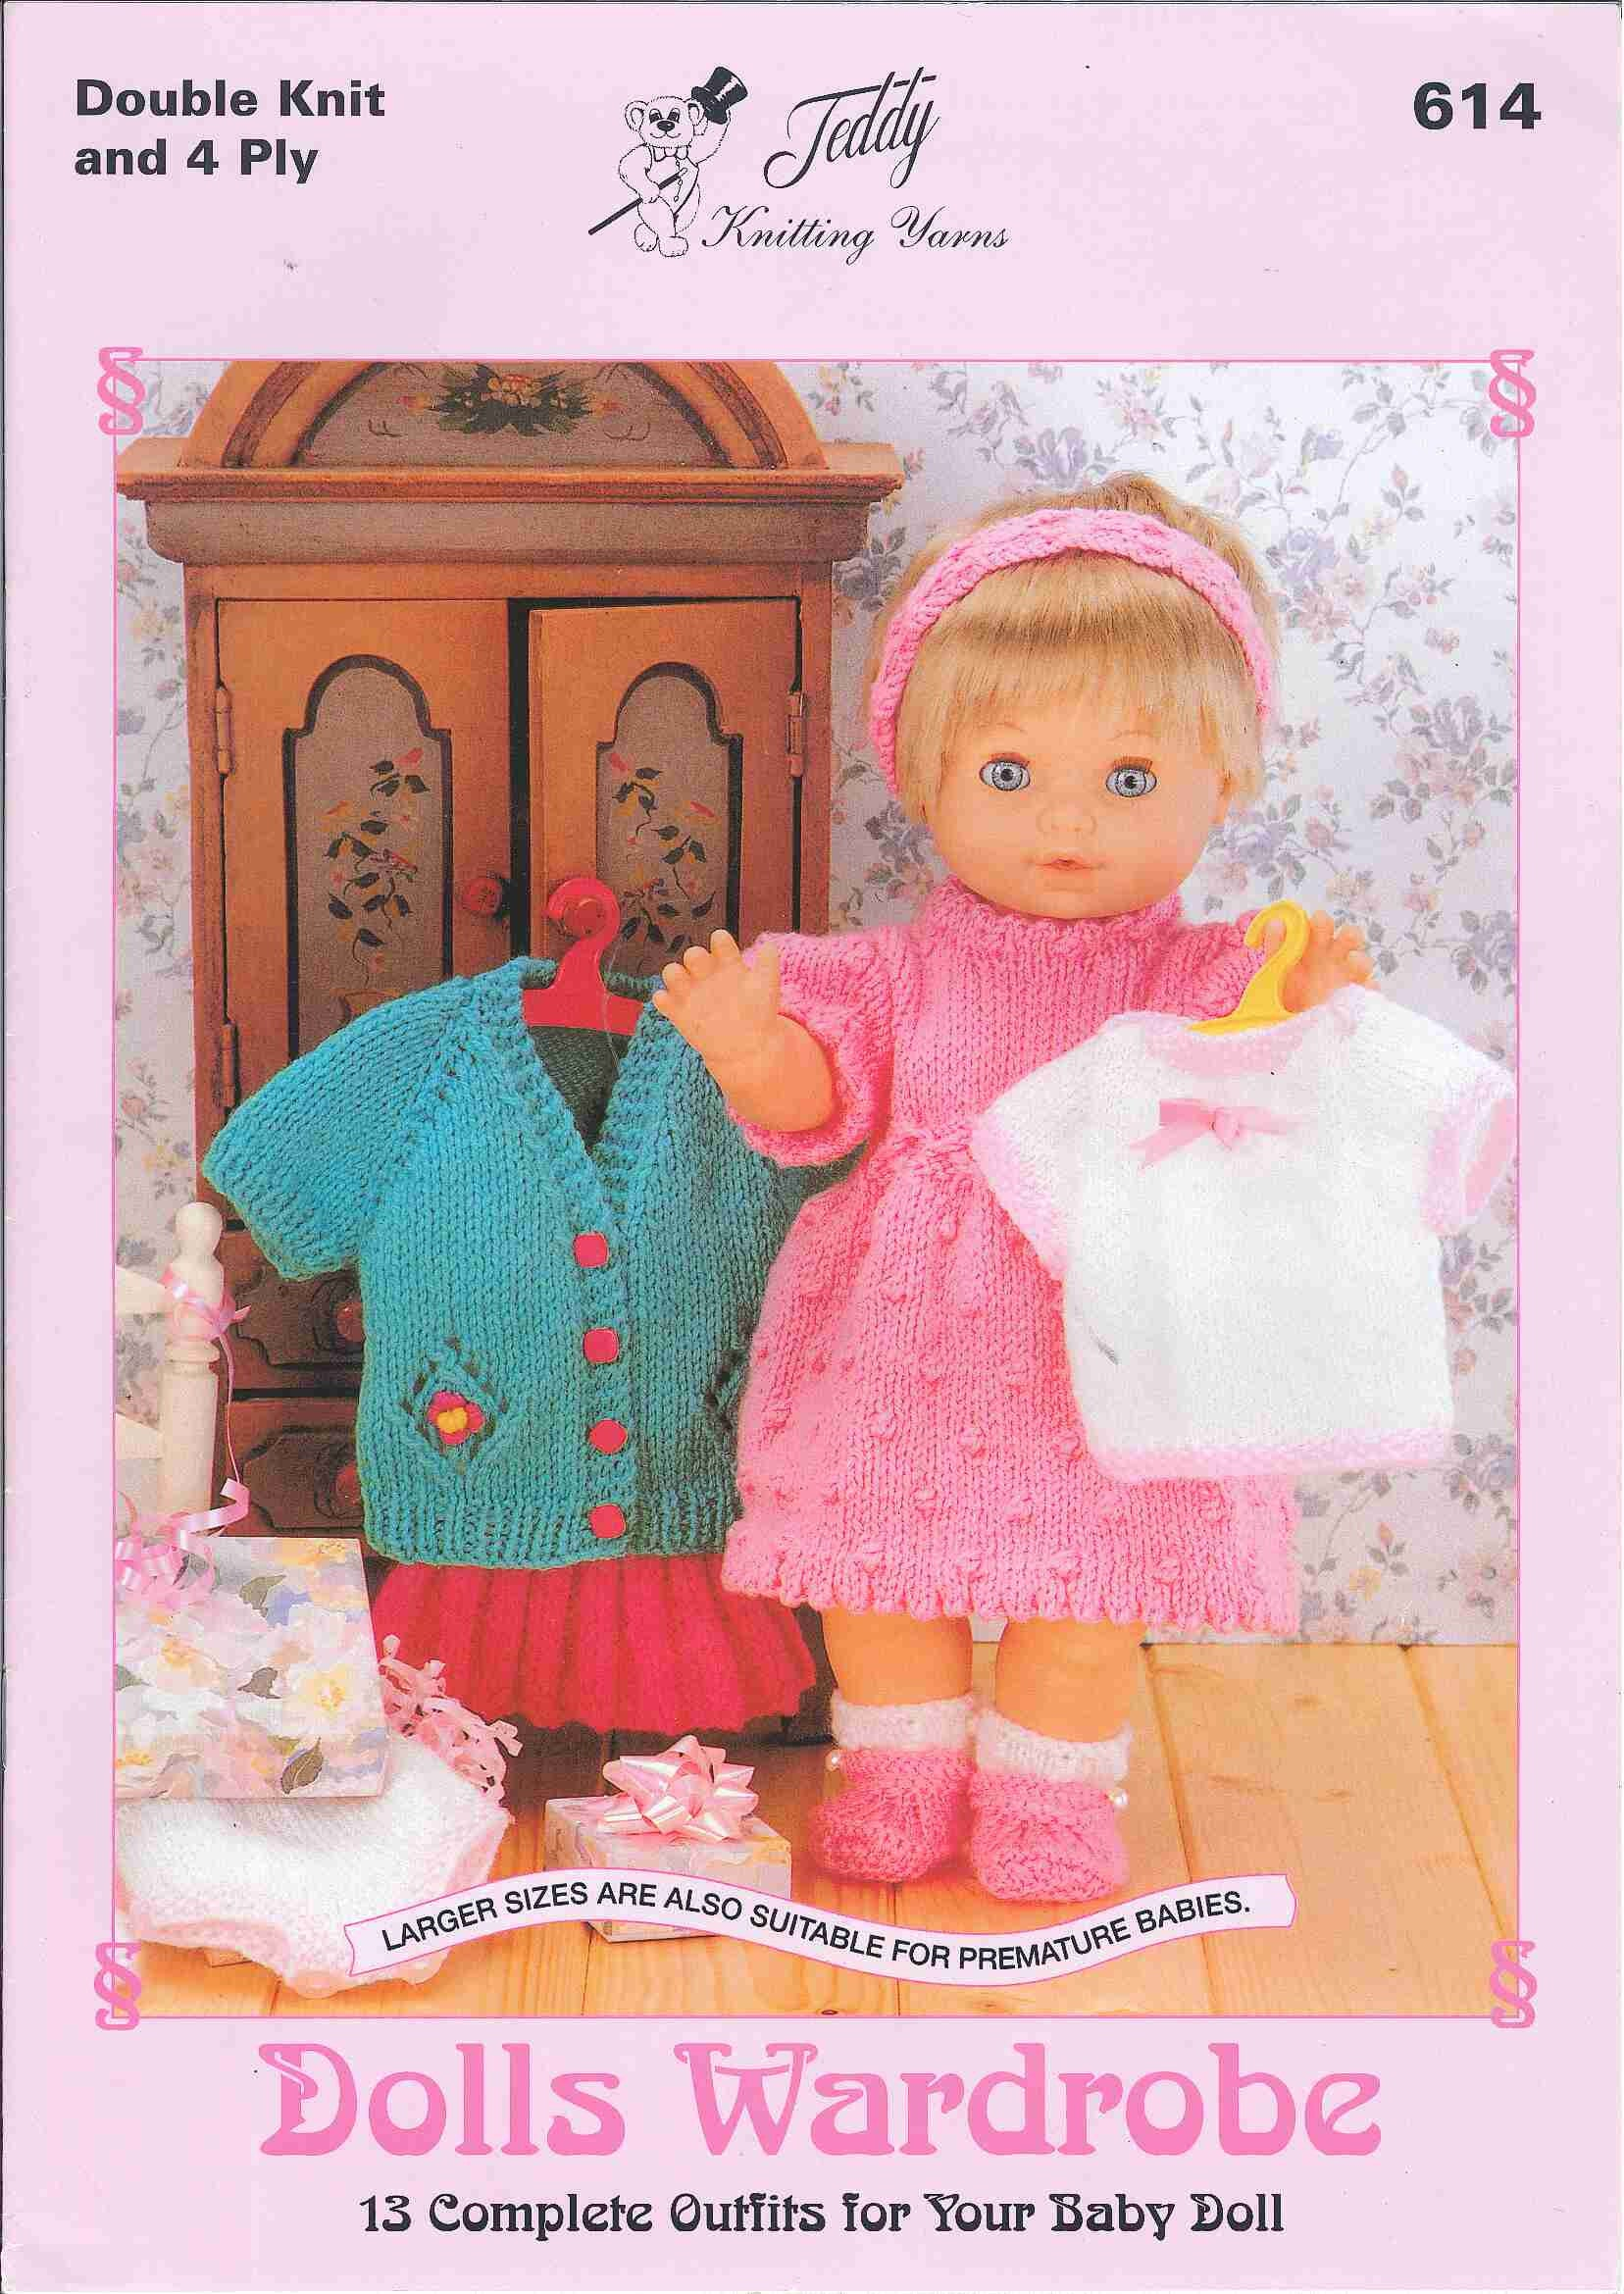 Teddy Knitting Pattern Book - Dolls Wardrobe - Complete Outfits for Baby Dolls